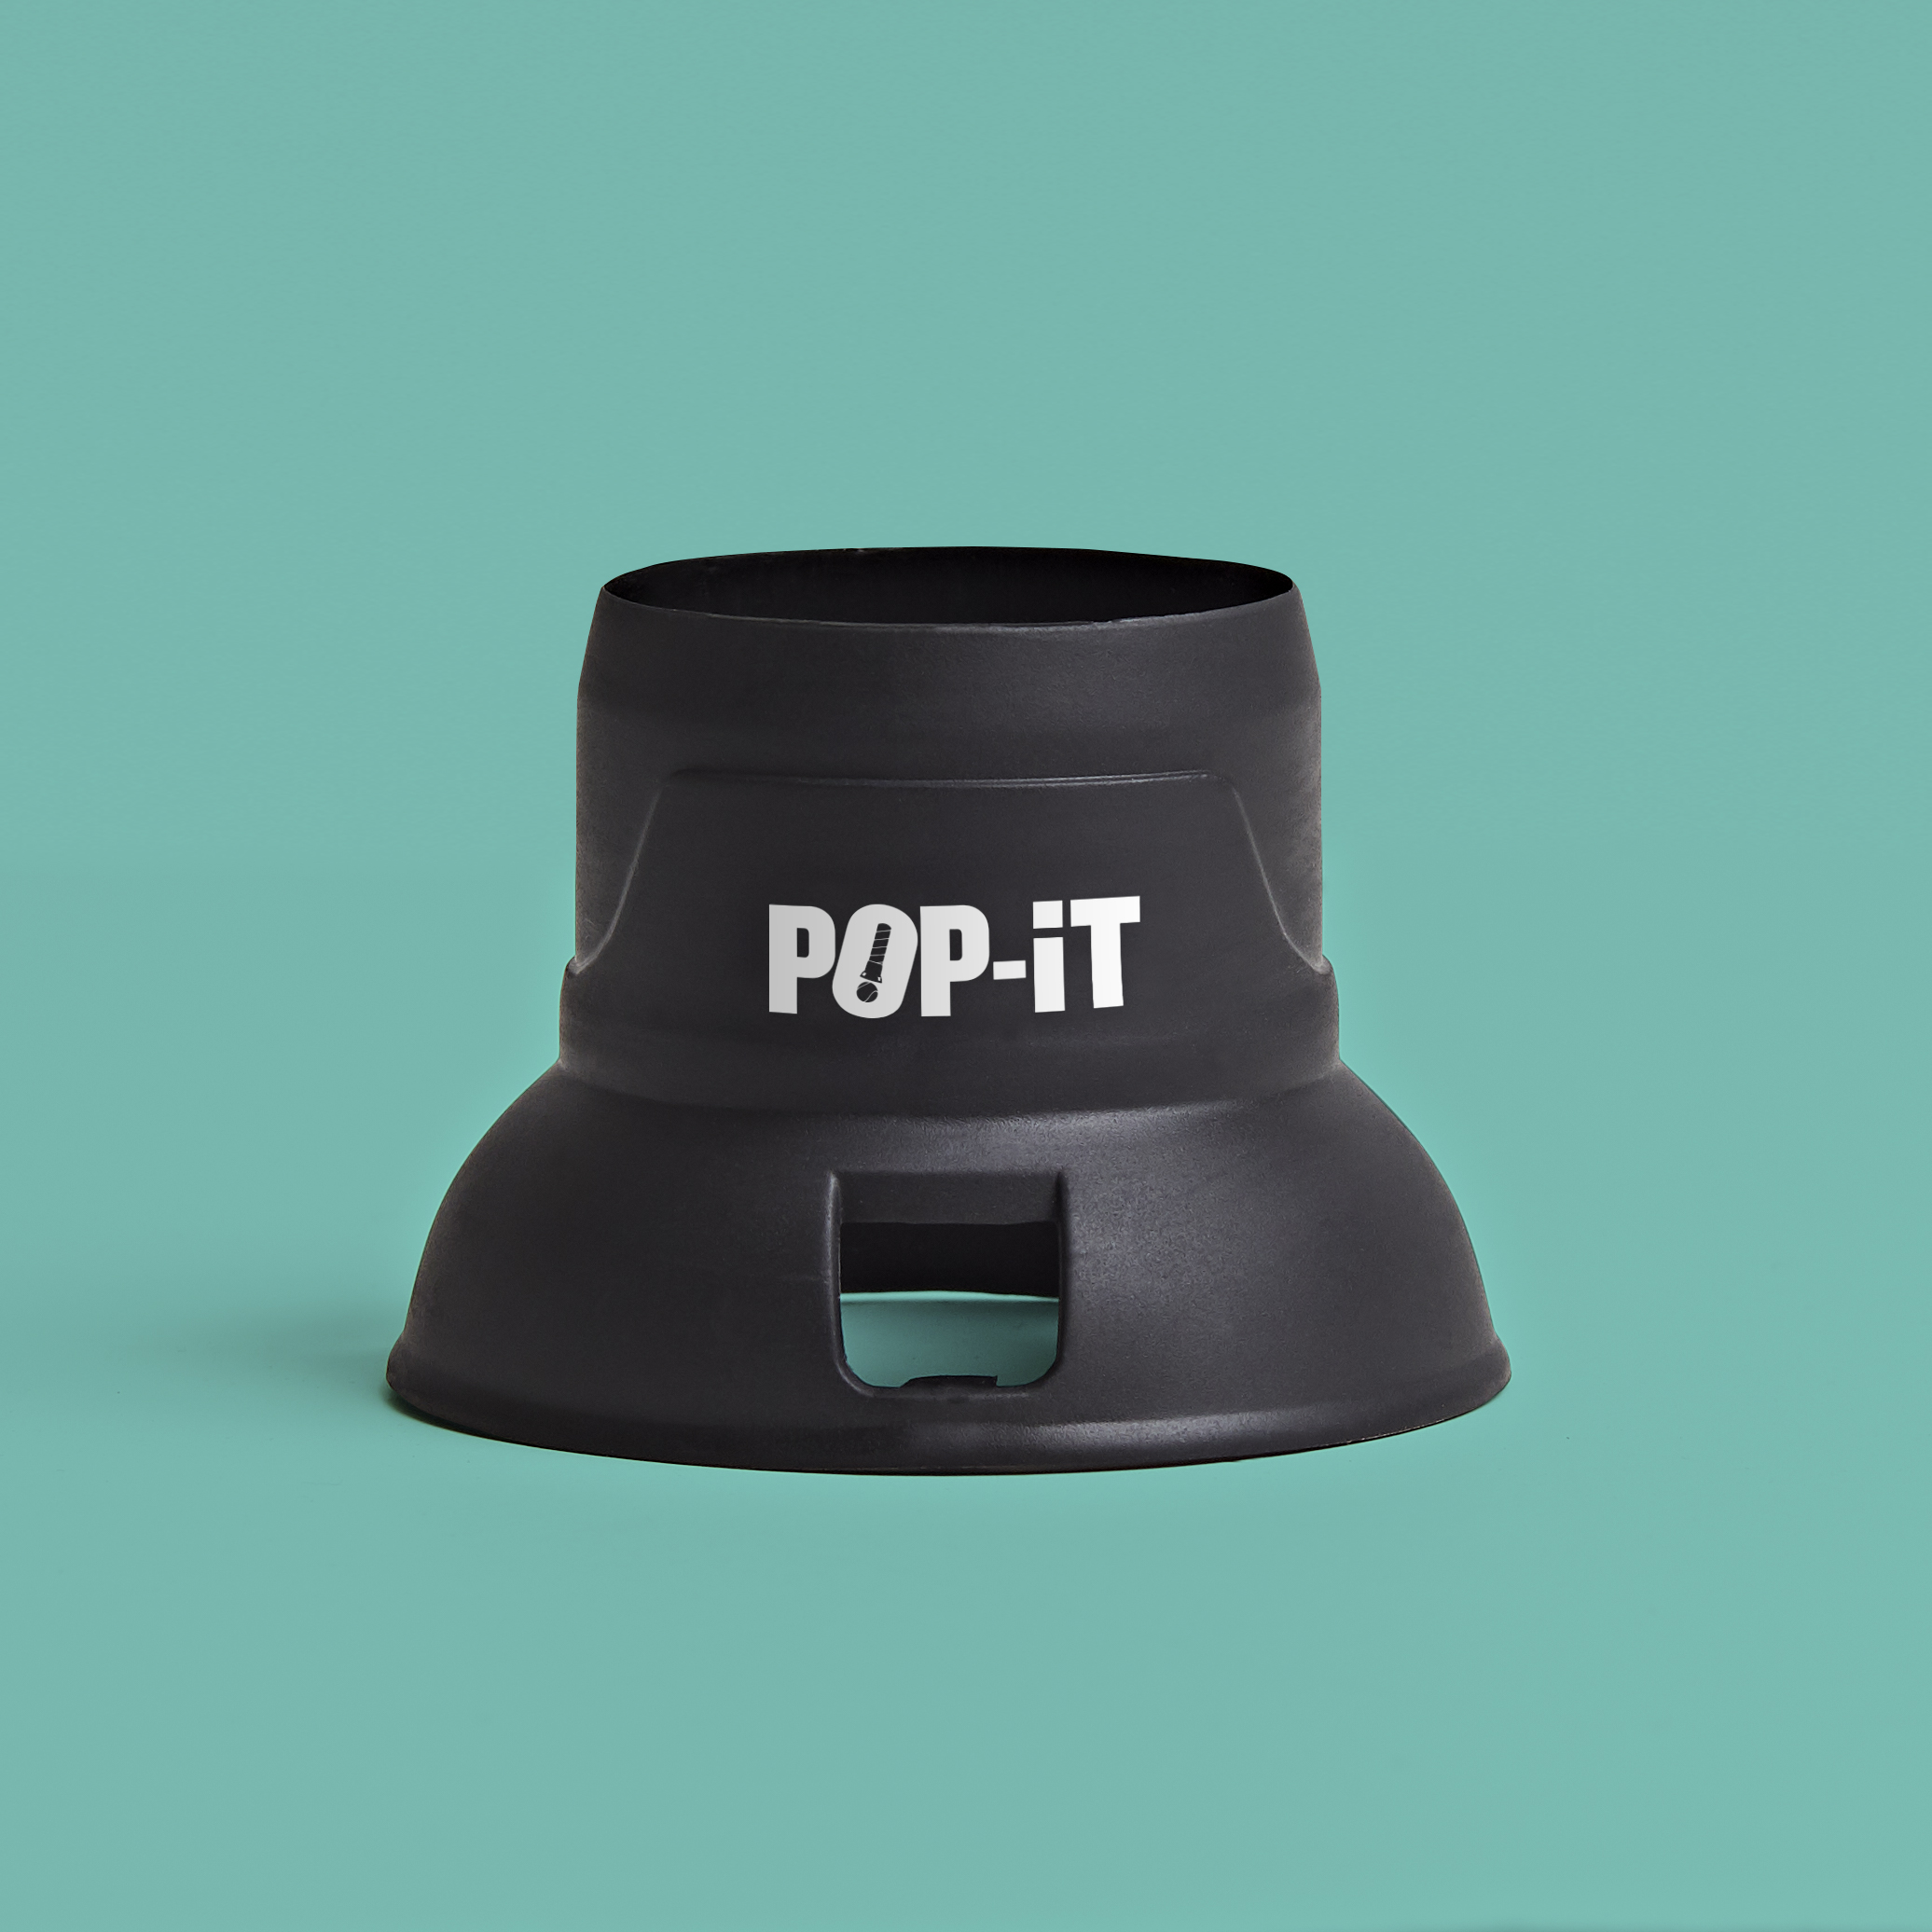 01_Pop-It_Standard-Profile.jpg